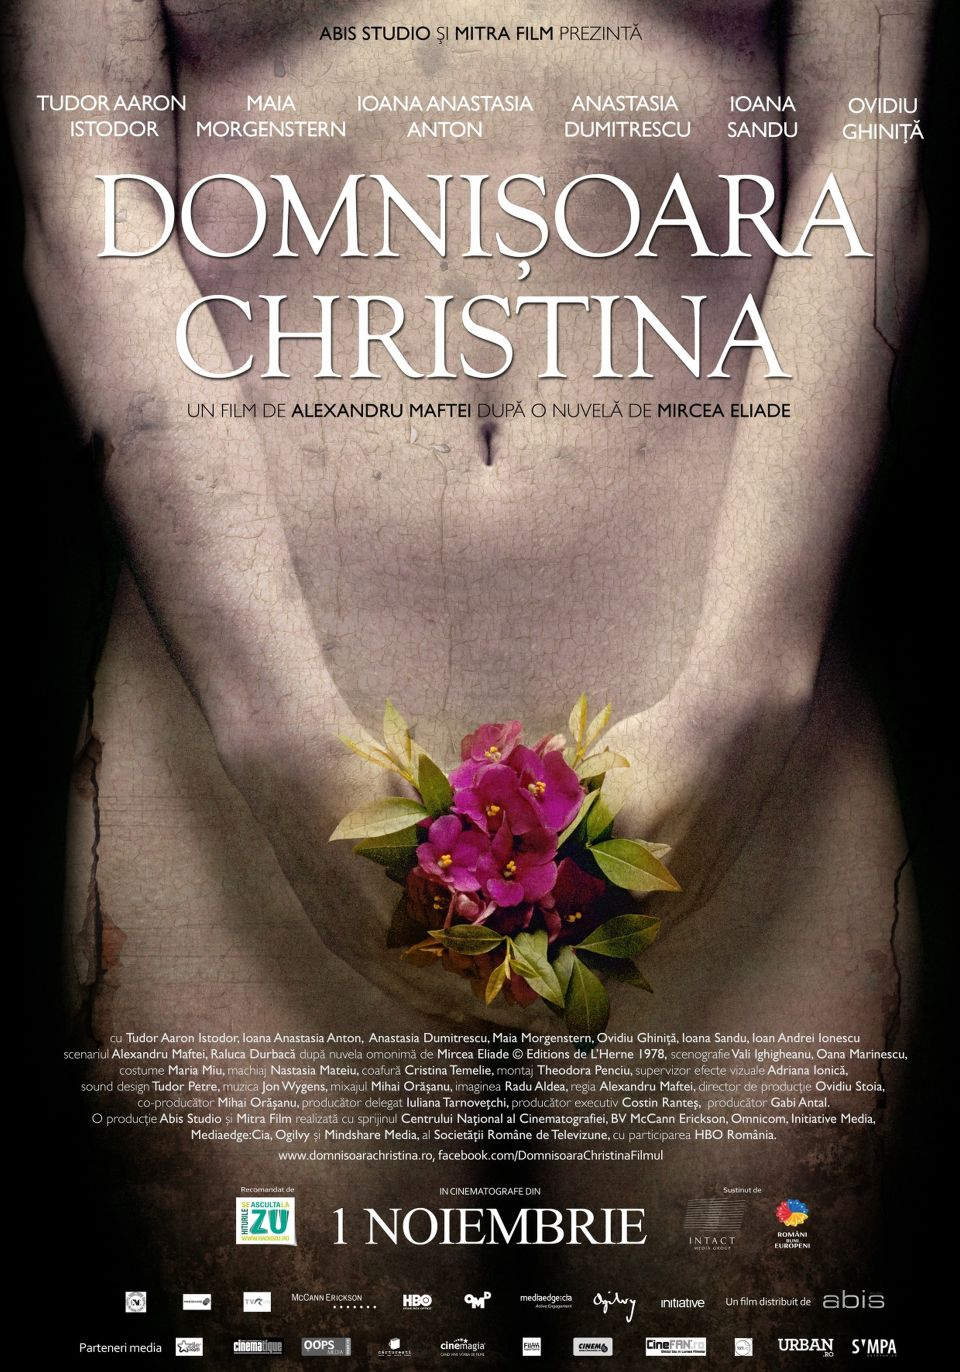 Domnişoara Christina (2013) - Photo